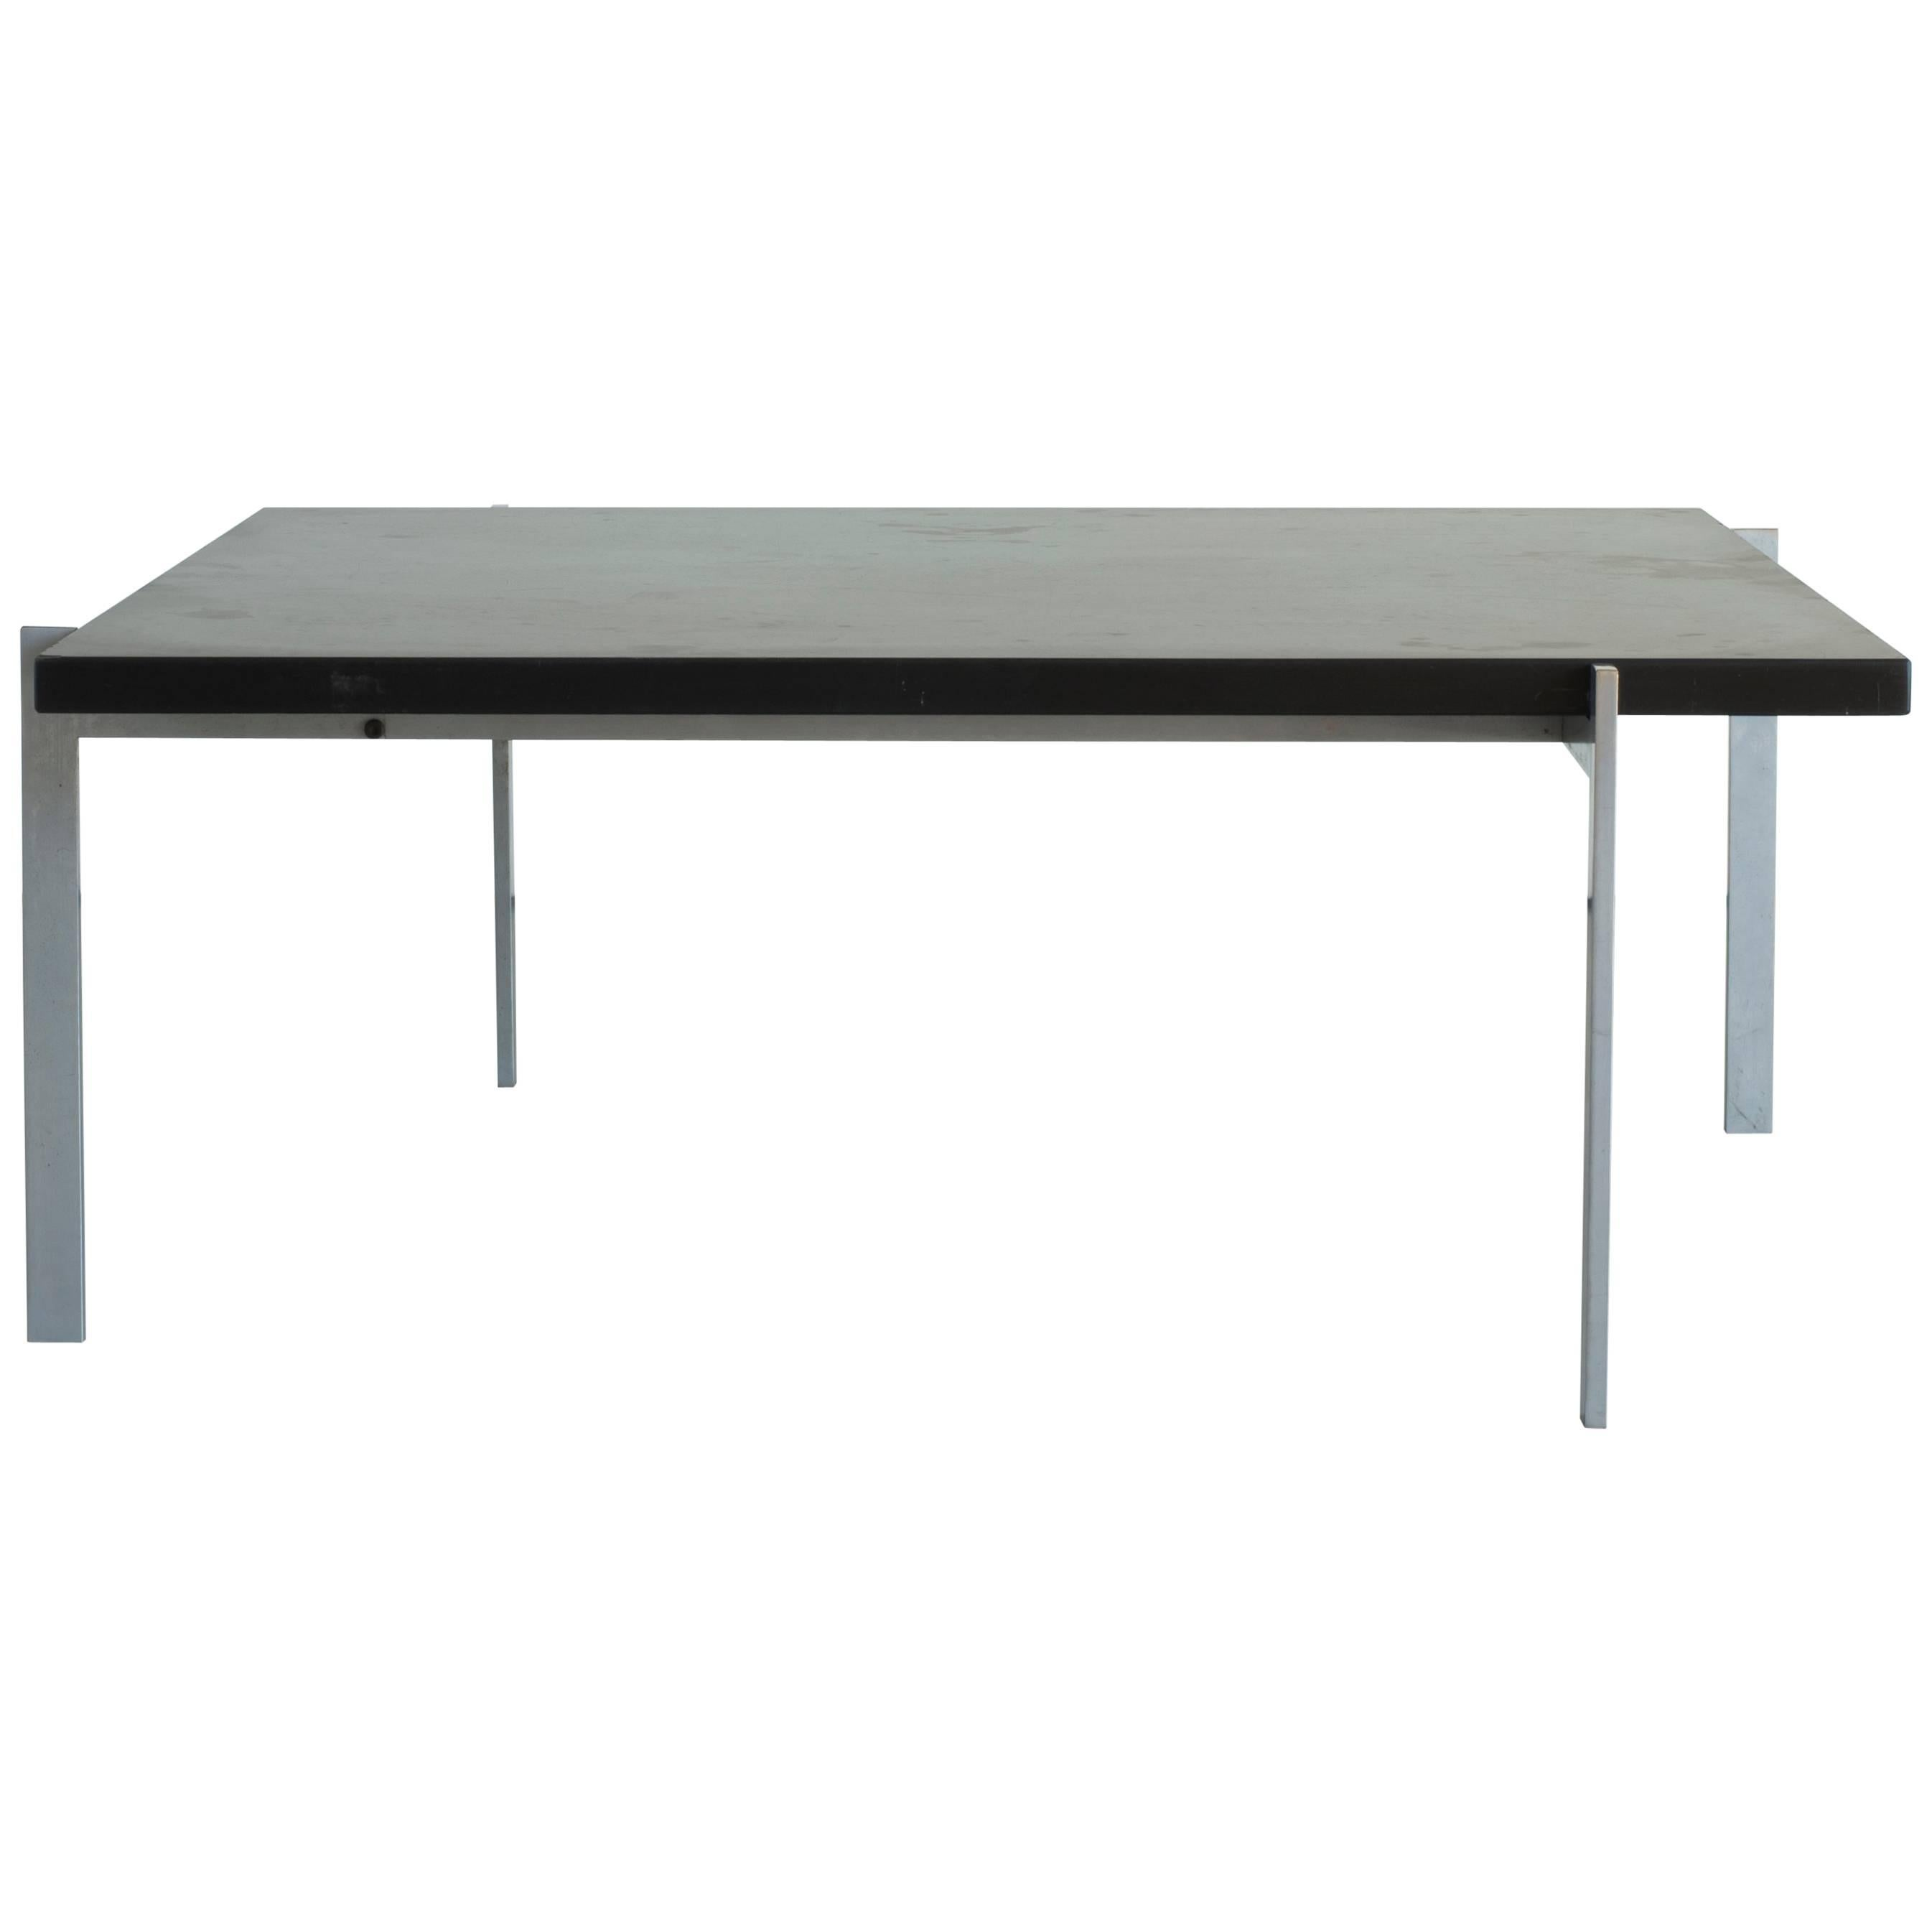 Poul Kjaerholm PK61 Coffee Table for E. Kold Christensen